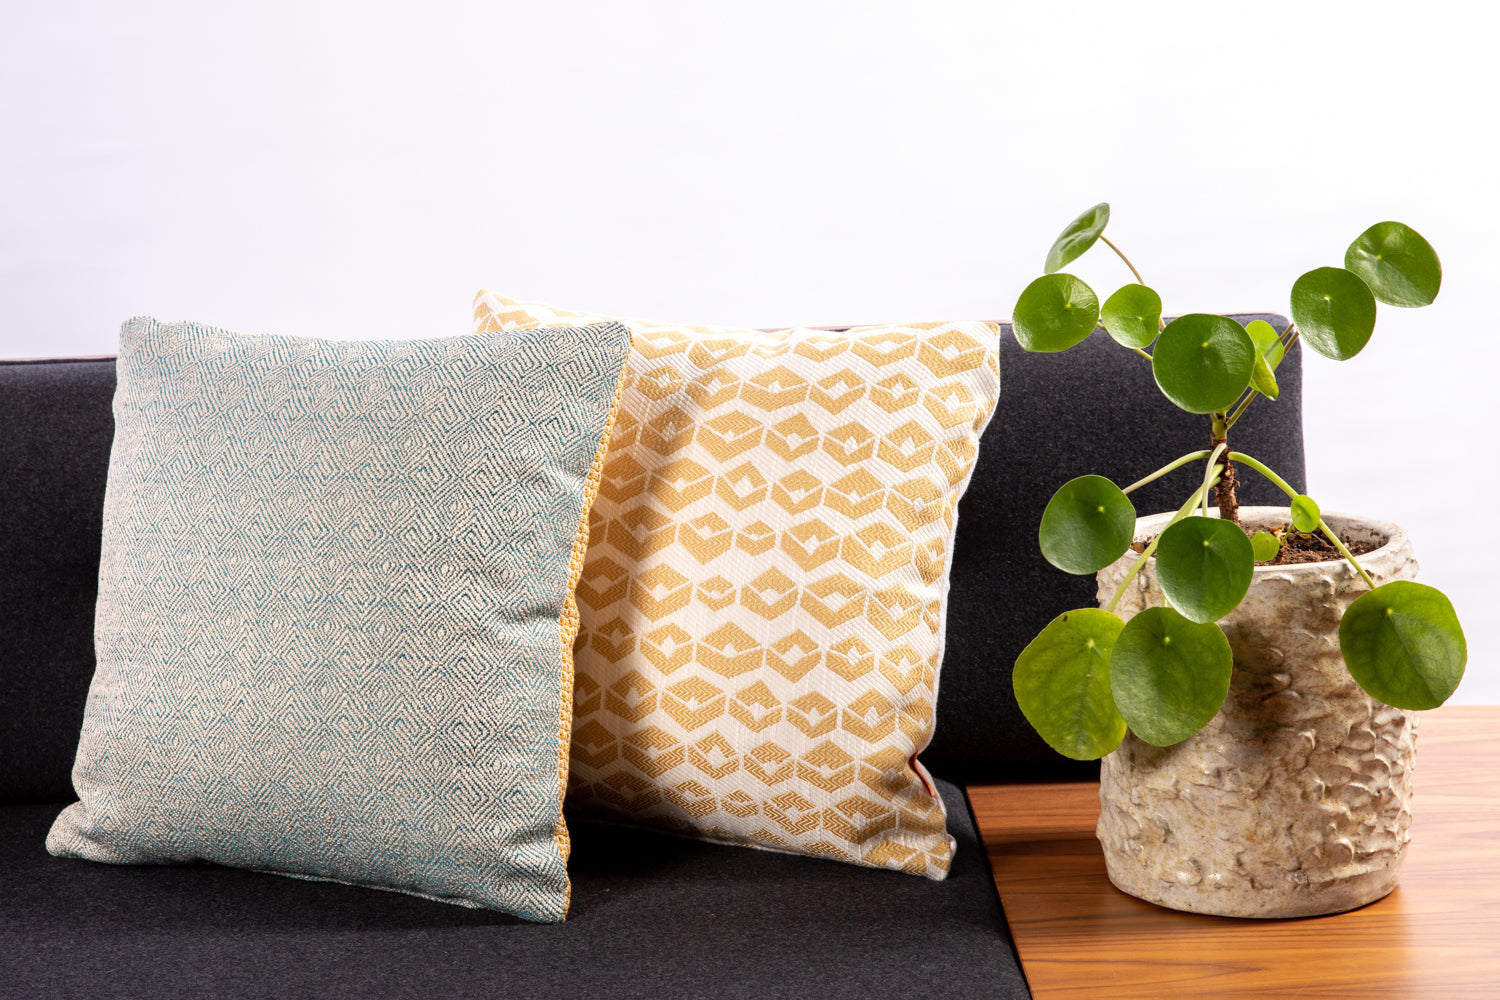 ffabb toss pillows, RADG & Maxwell fabrics, woven small scale pattern